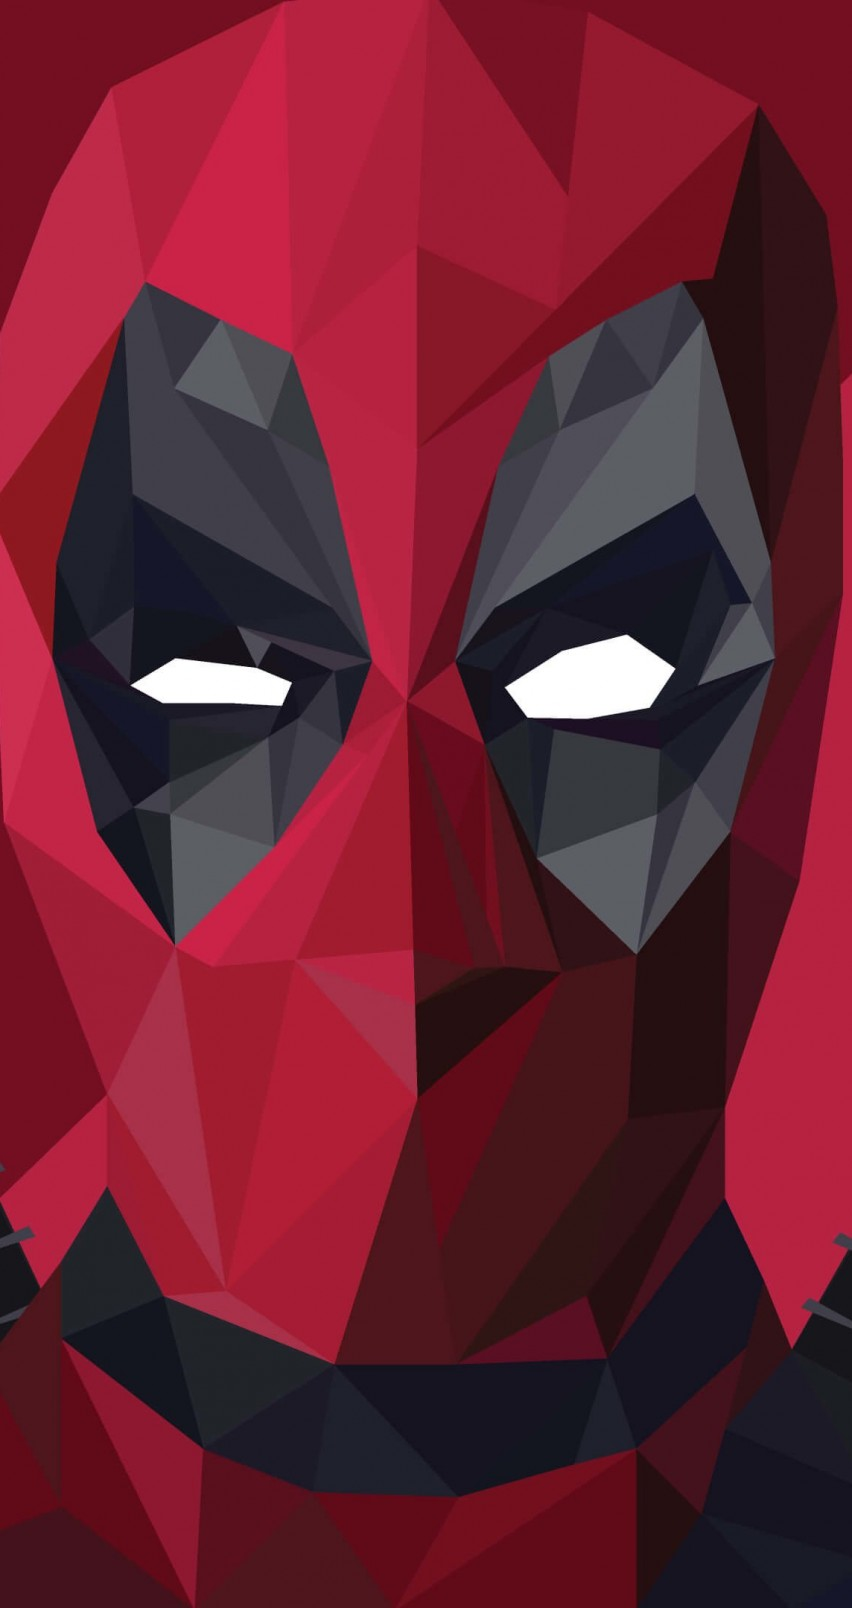 Low Poly Deadpool Wallpaper for Apple iPhone 6 / 6s